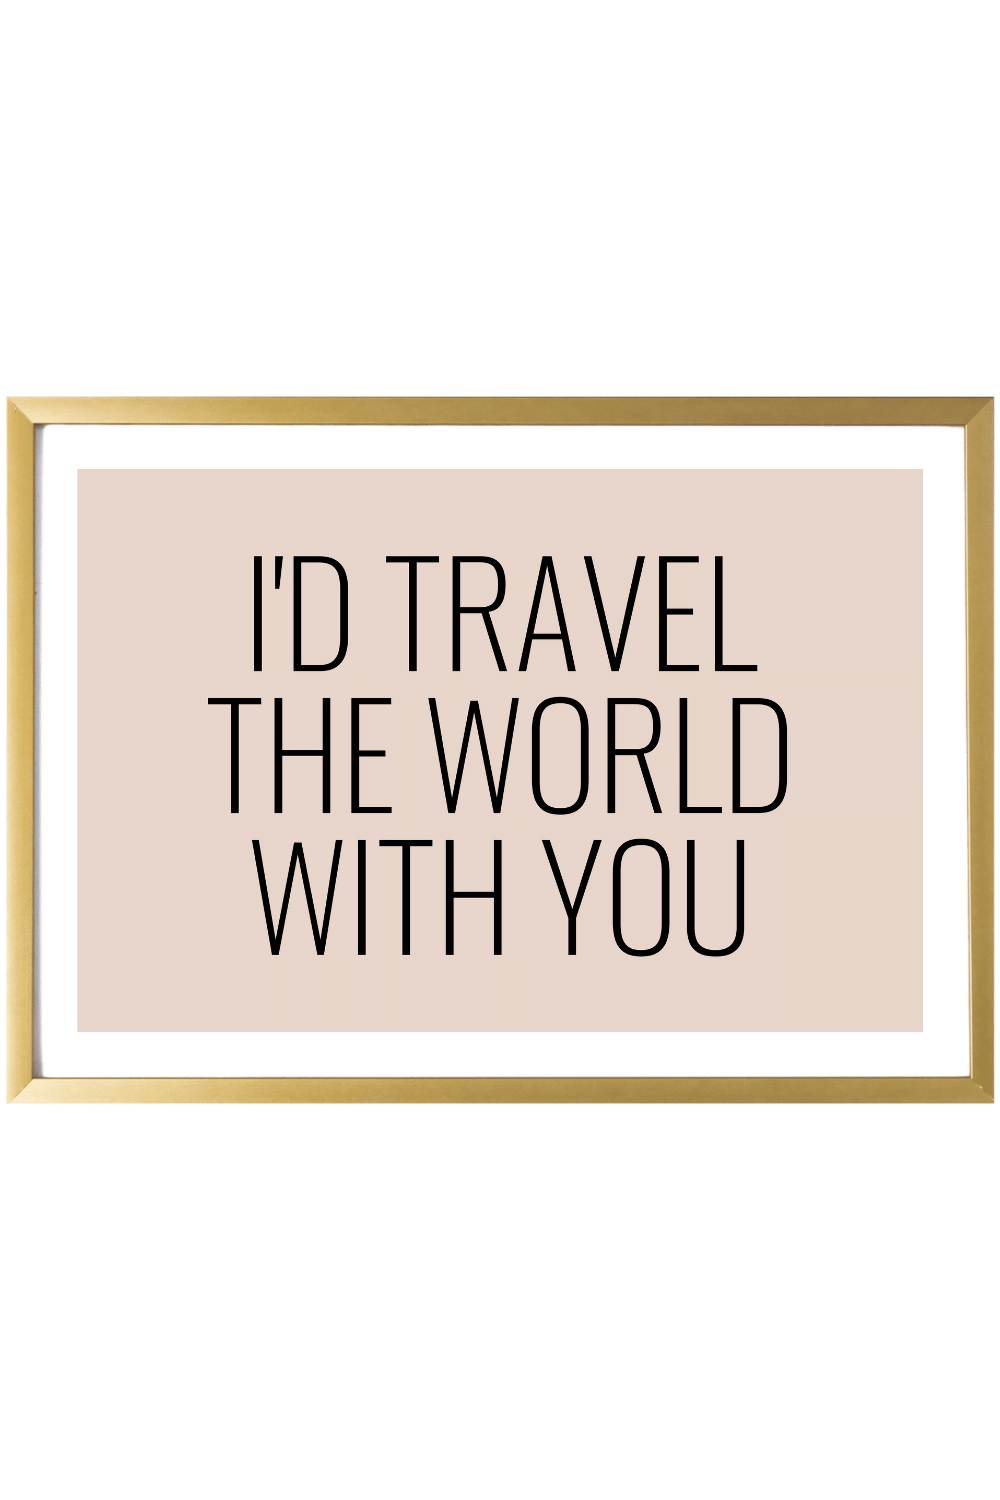 Print Purge - Contemporary Print - I'd Travel the World With You 4x6